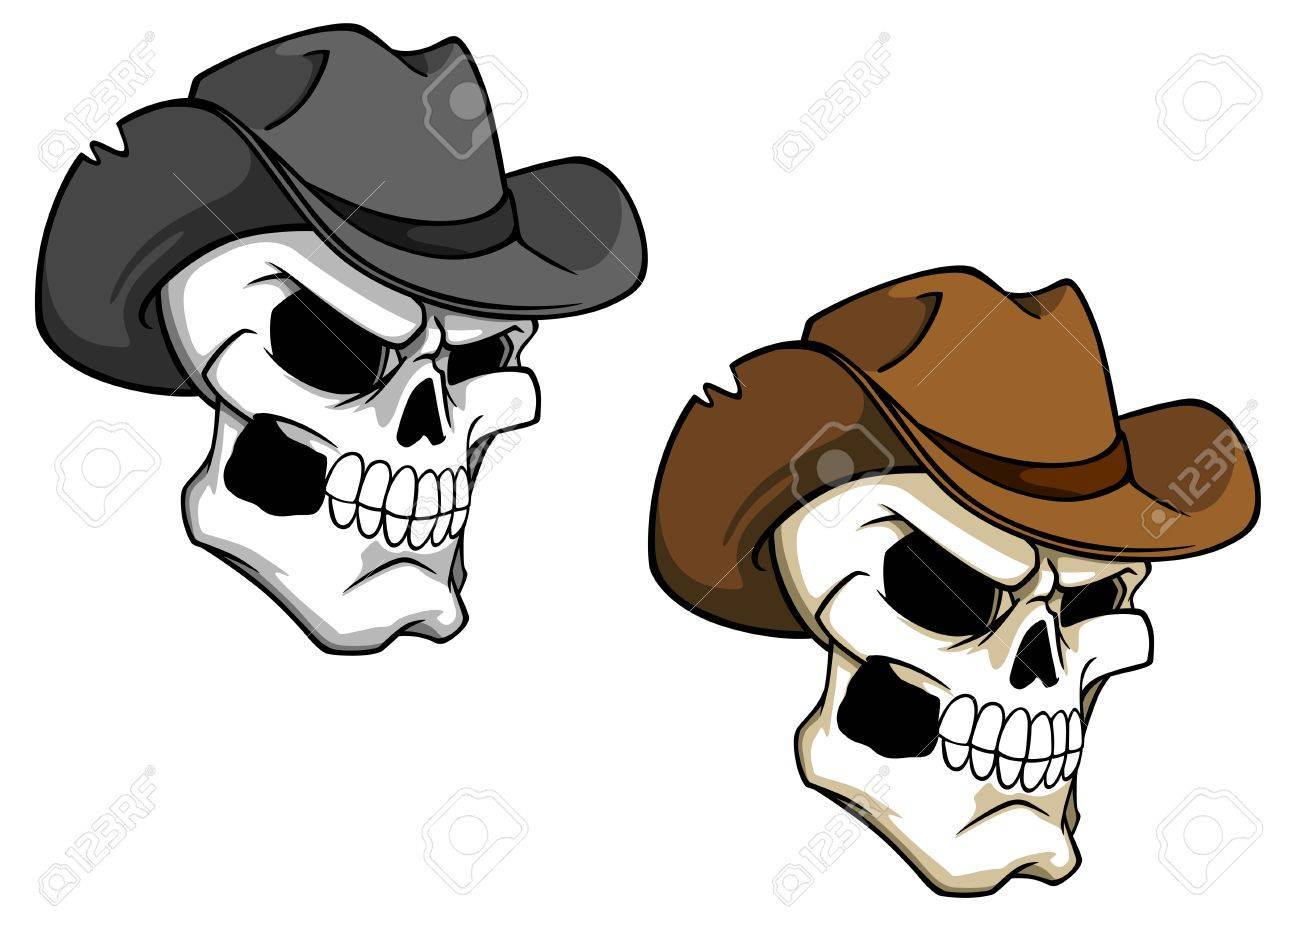 Cowboy skull in brown hat for tattoo or mascot Stock Vector - 21317787